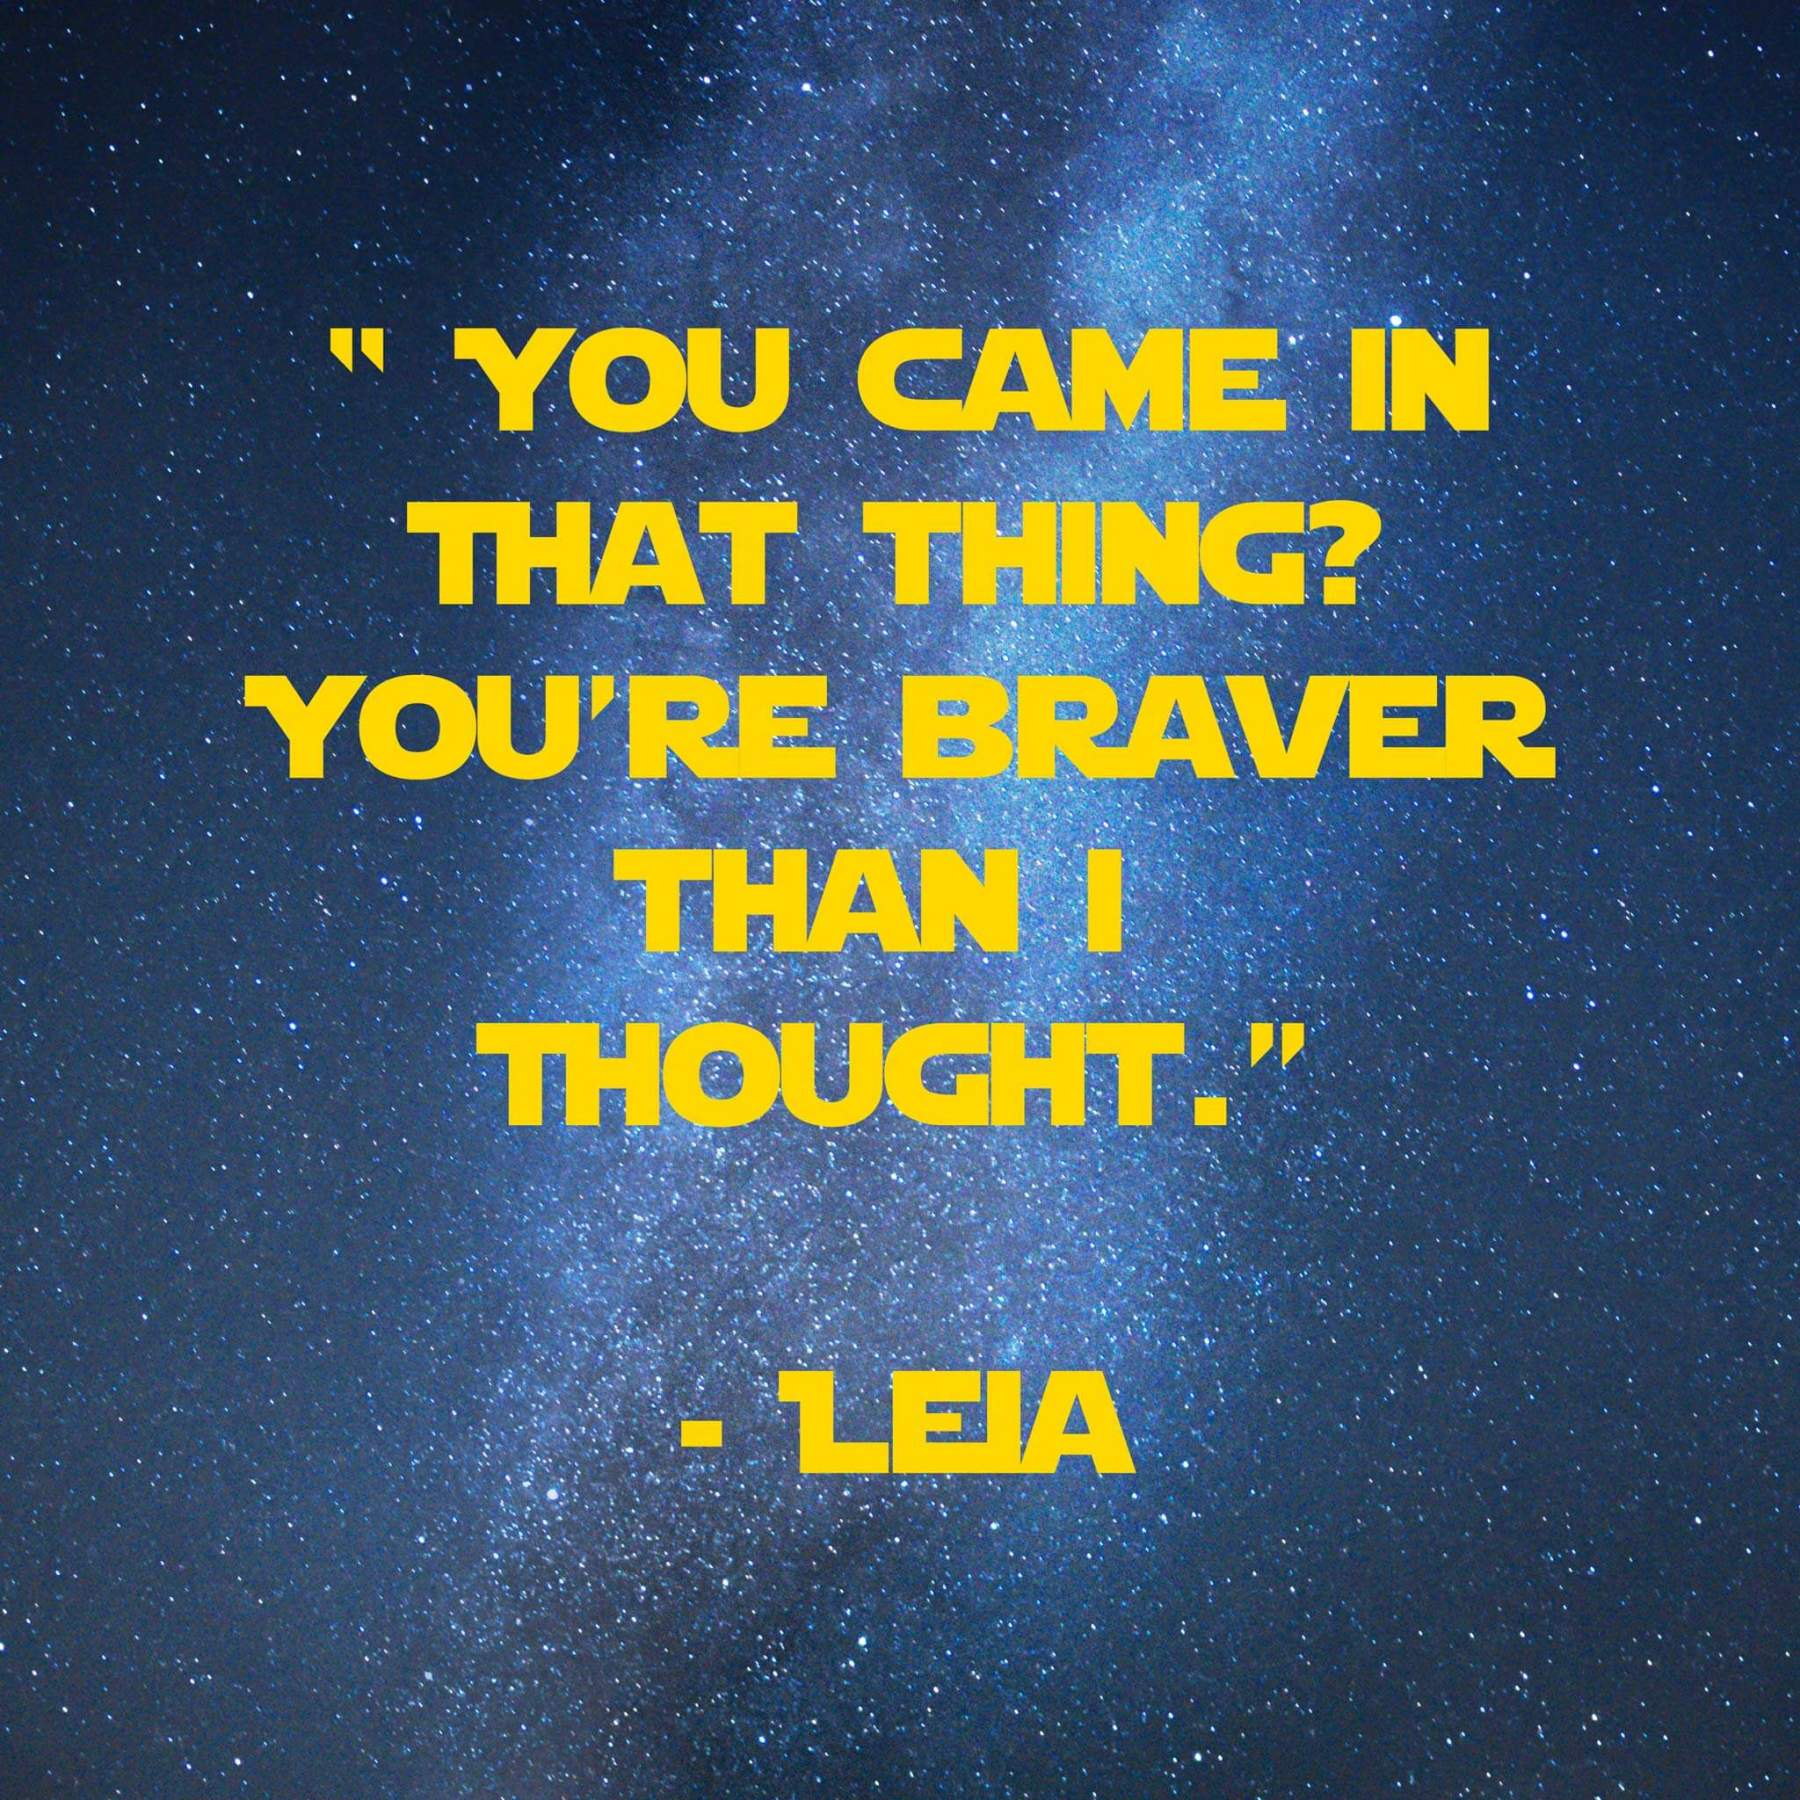 You came in that thing | 31 Memorable Star Wars Quotes for Geeks